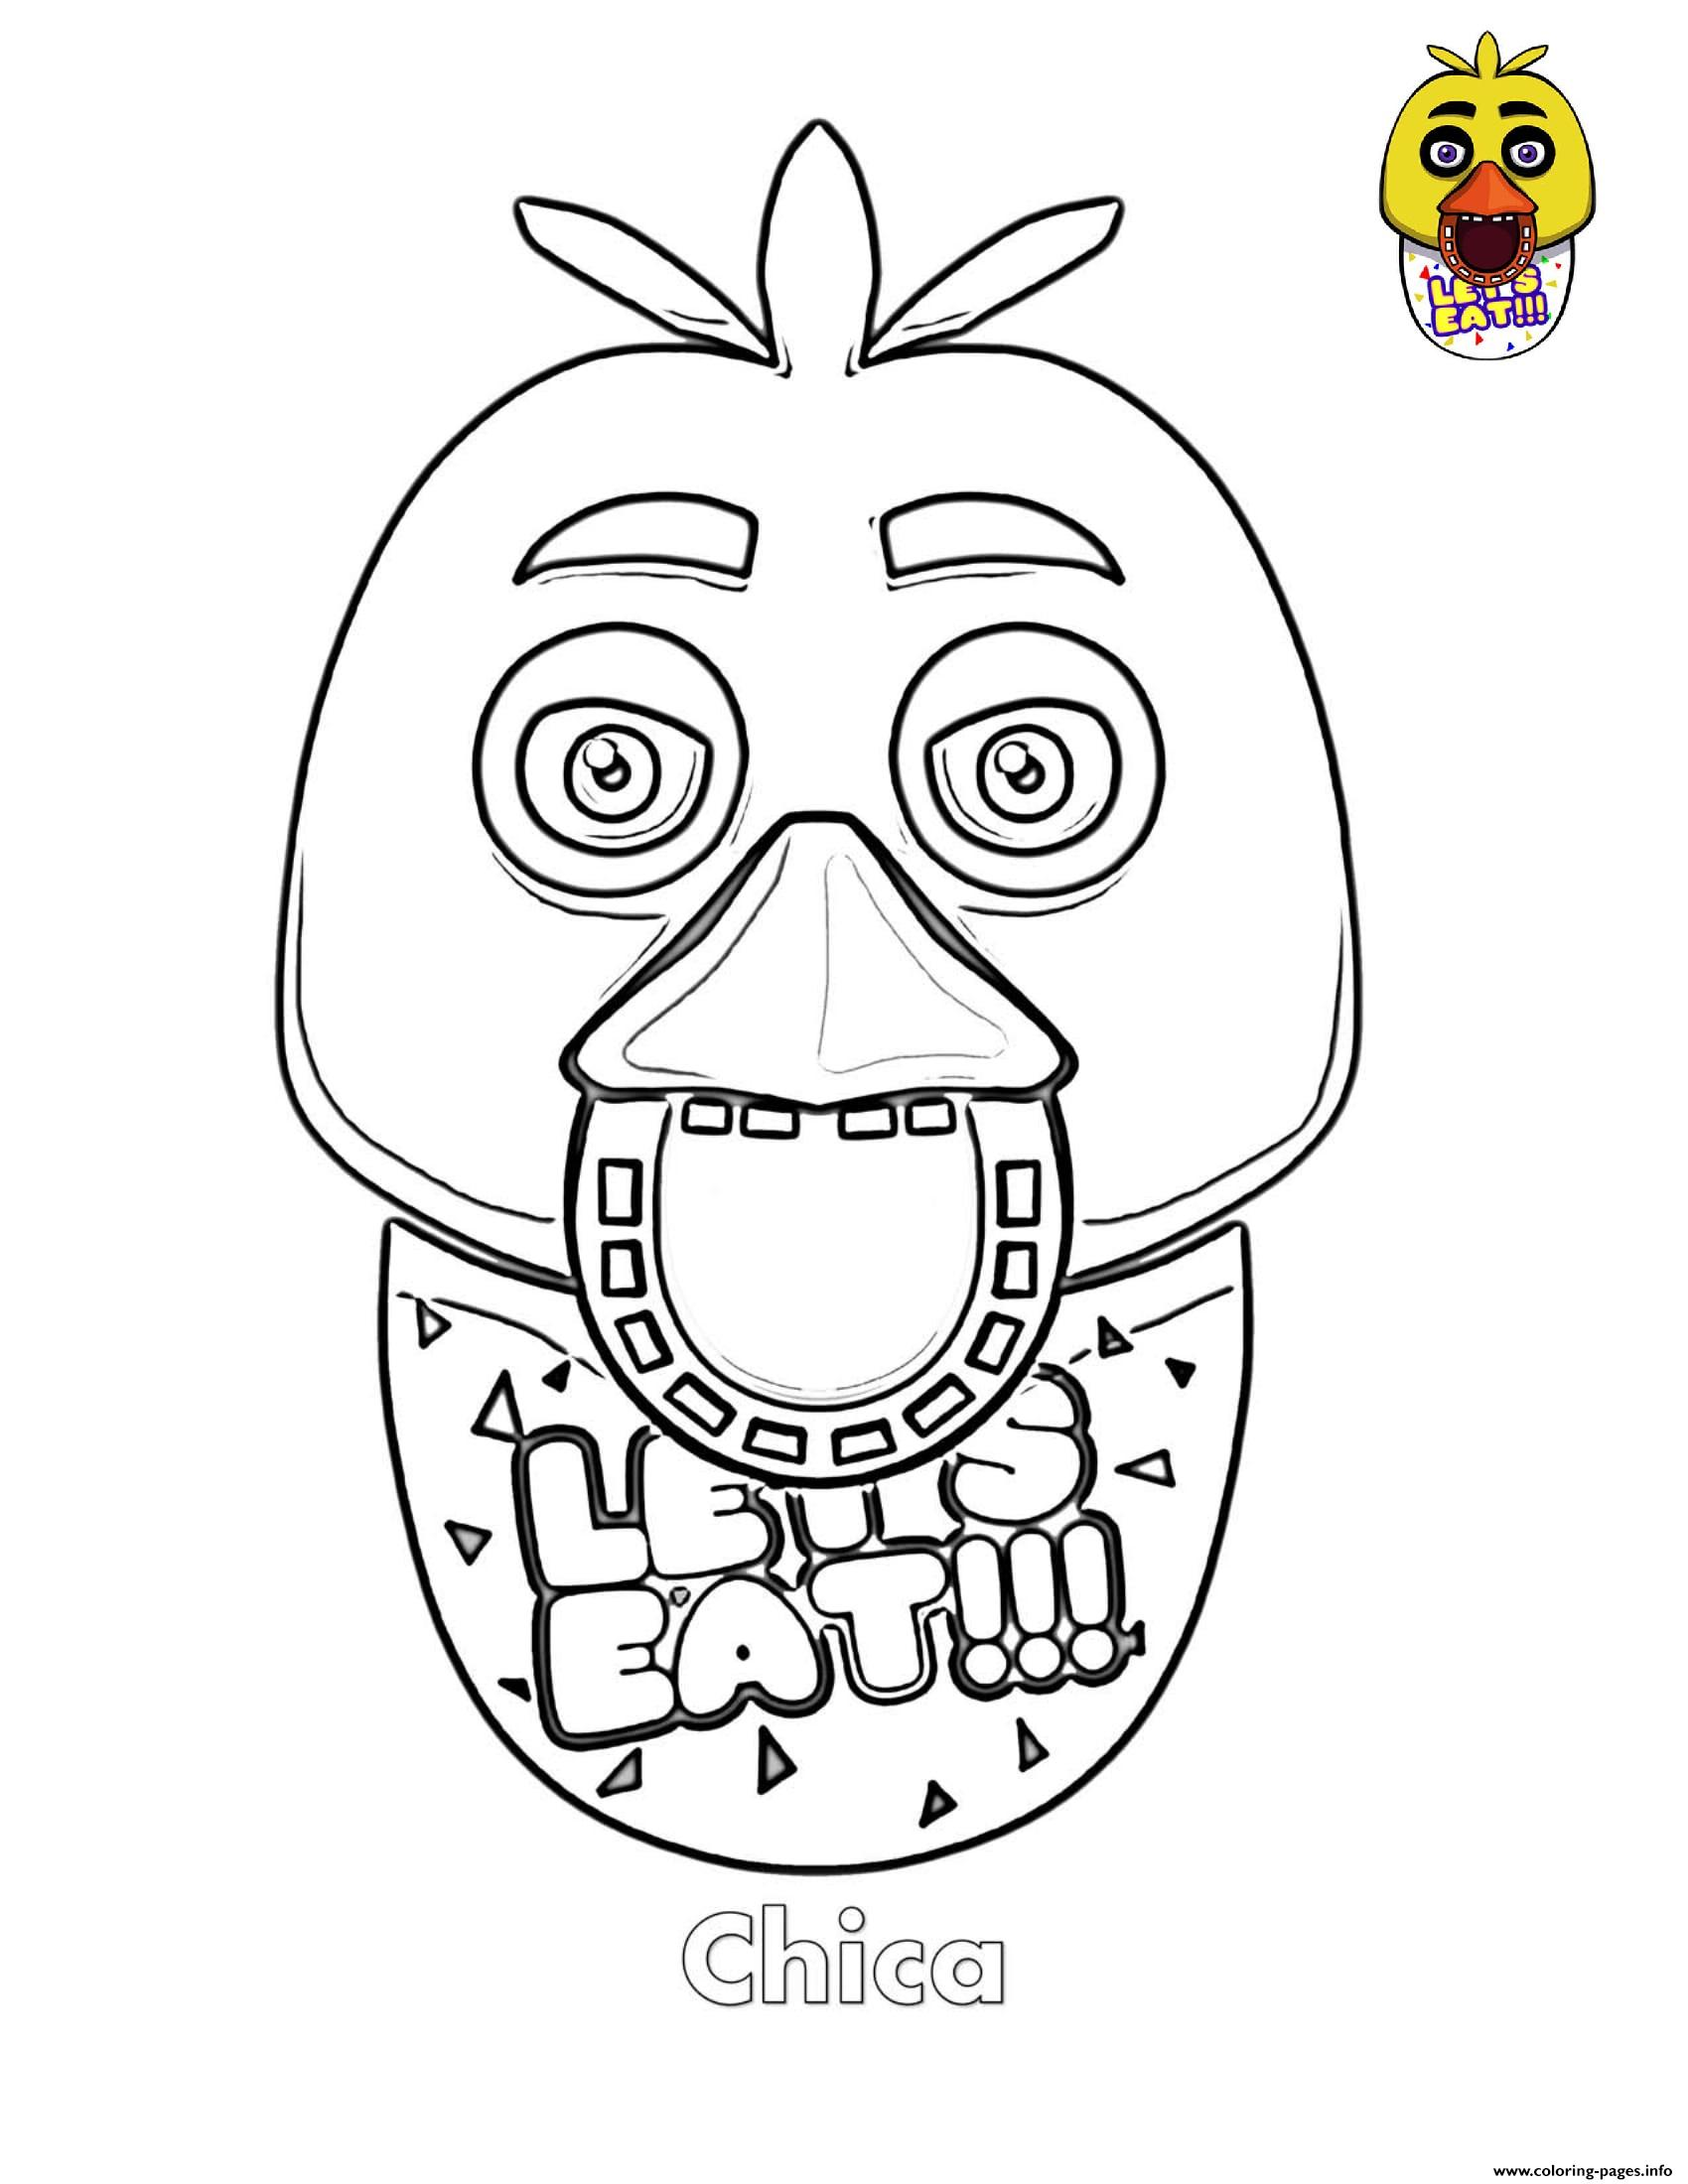 fnaf coloring pages chica - photo#6